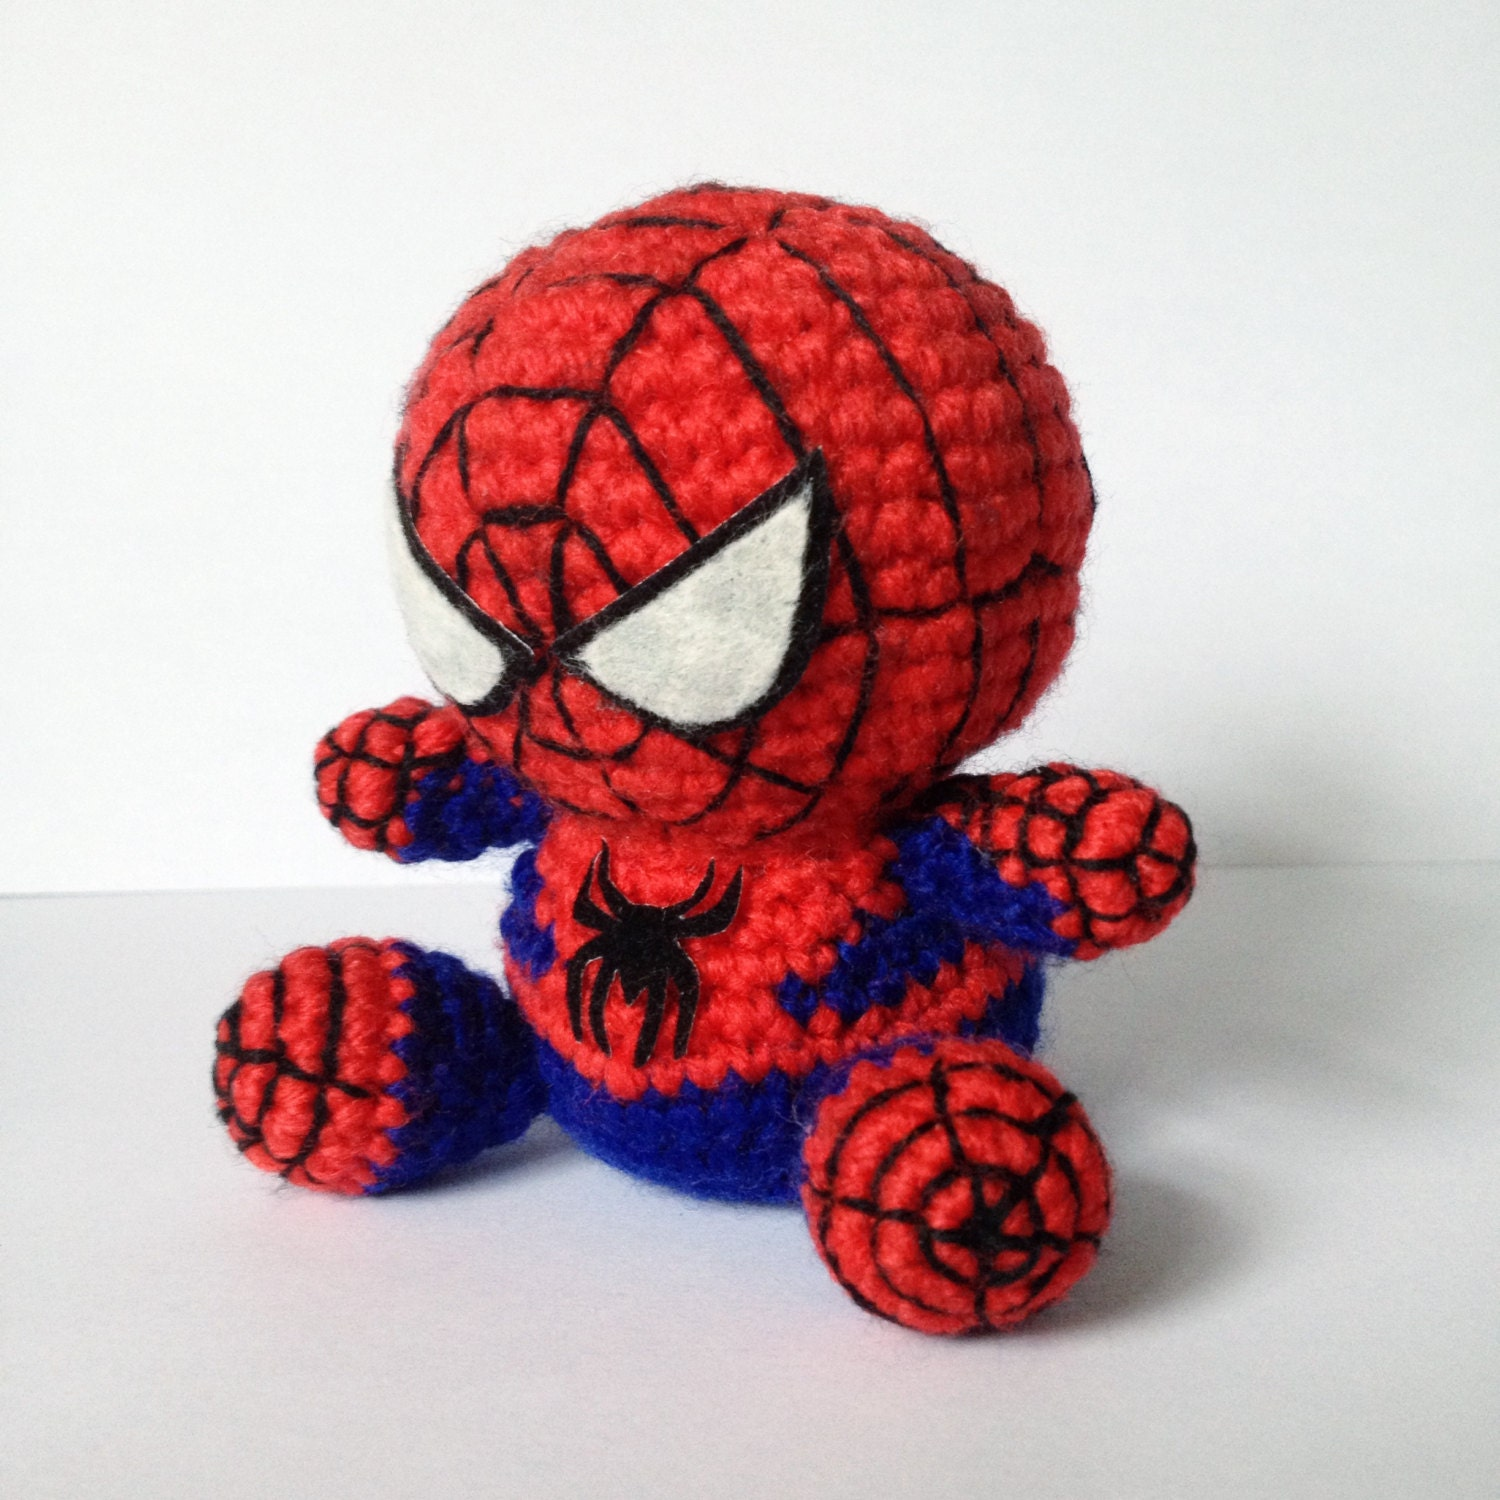 Free Amigurumi Superhero Patterns : SPIDERMAN Amigurumi Pattern SuperHero Spider Marvel Easy DIY